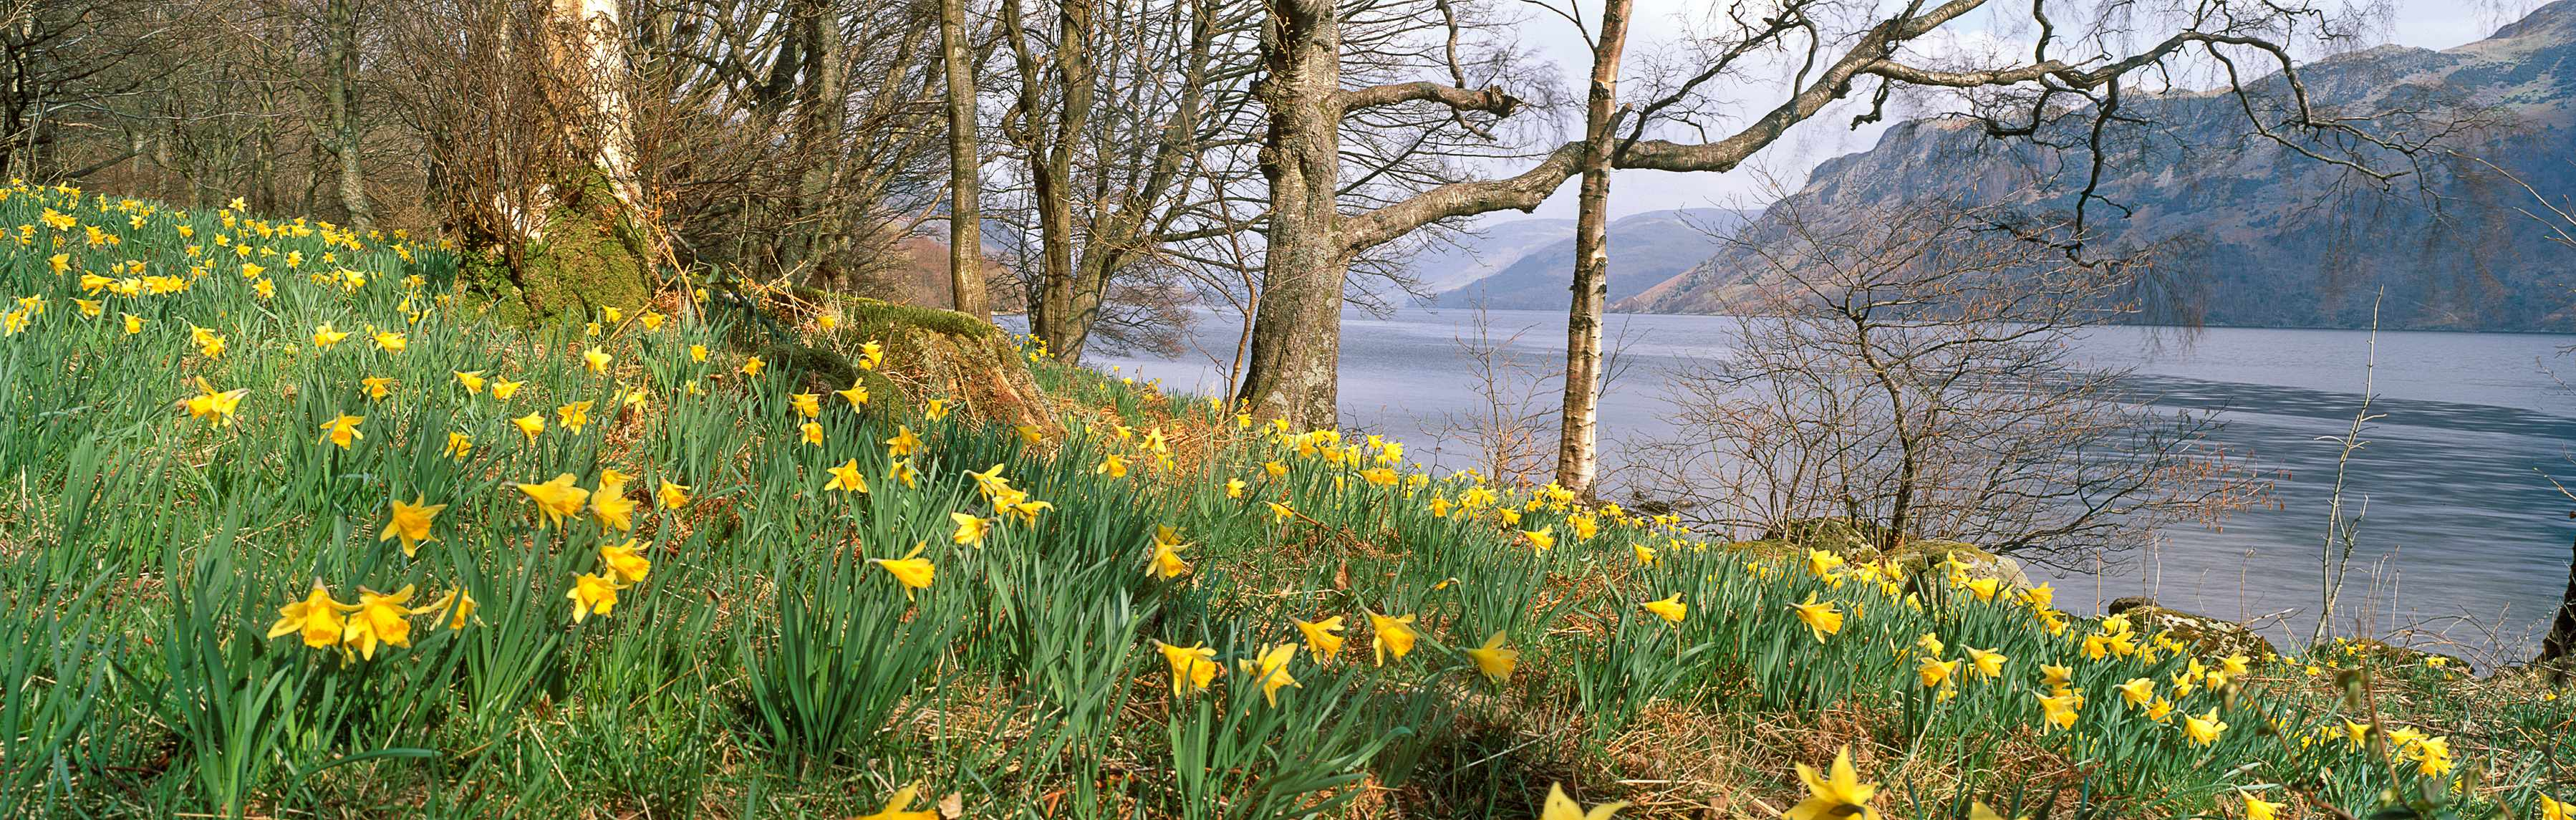 "Wild daffodils on the shoreline at Glencoyne with Ullswater and mountains behind, an inspiration for William Wordsworth's poem ""I wandered as Lonely as a cloud""."